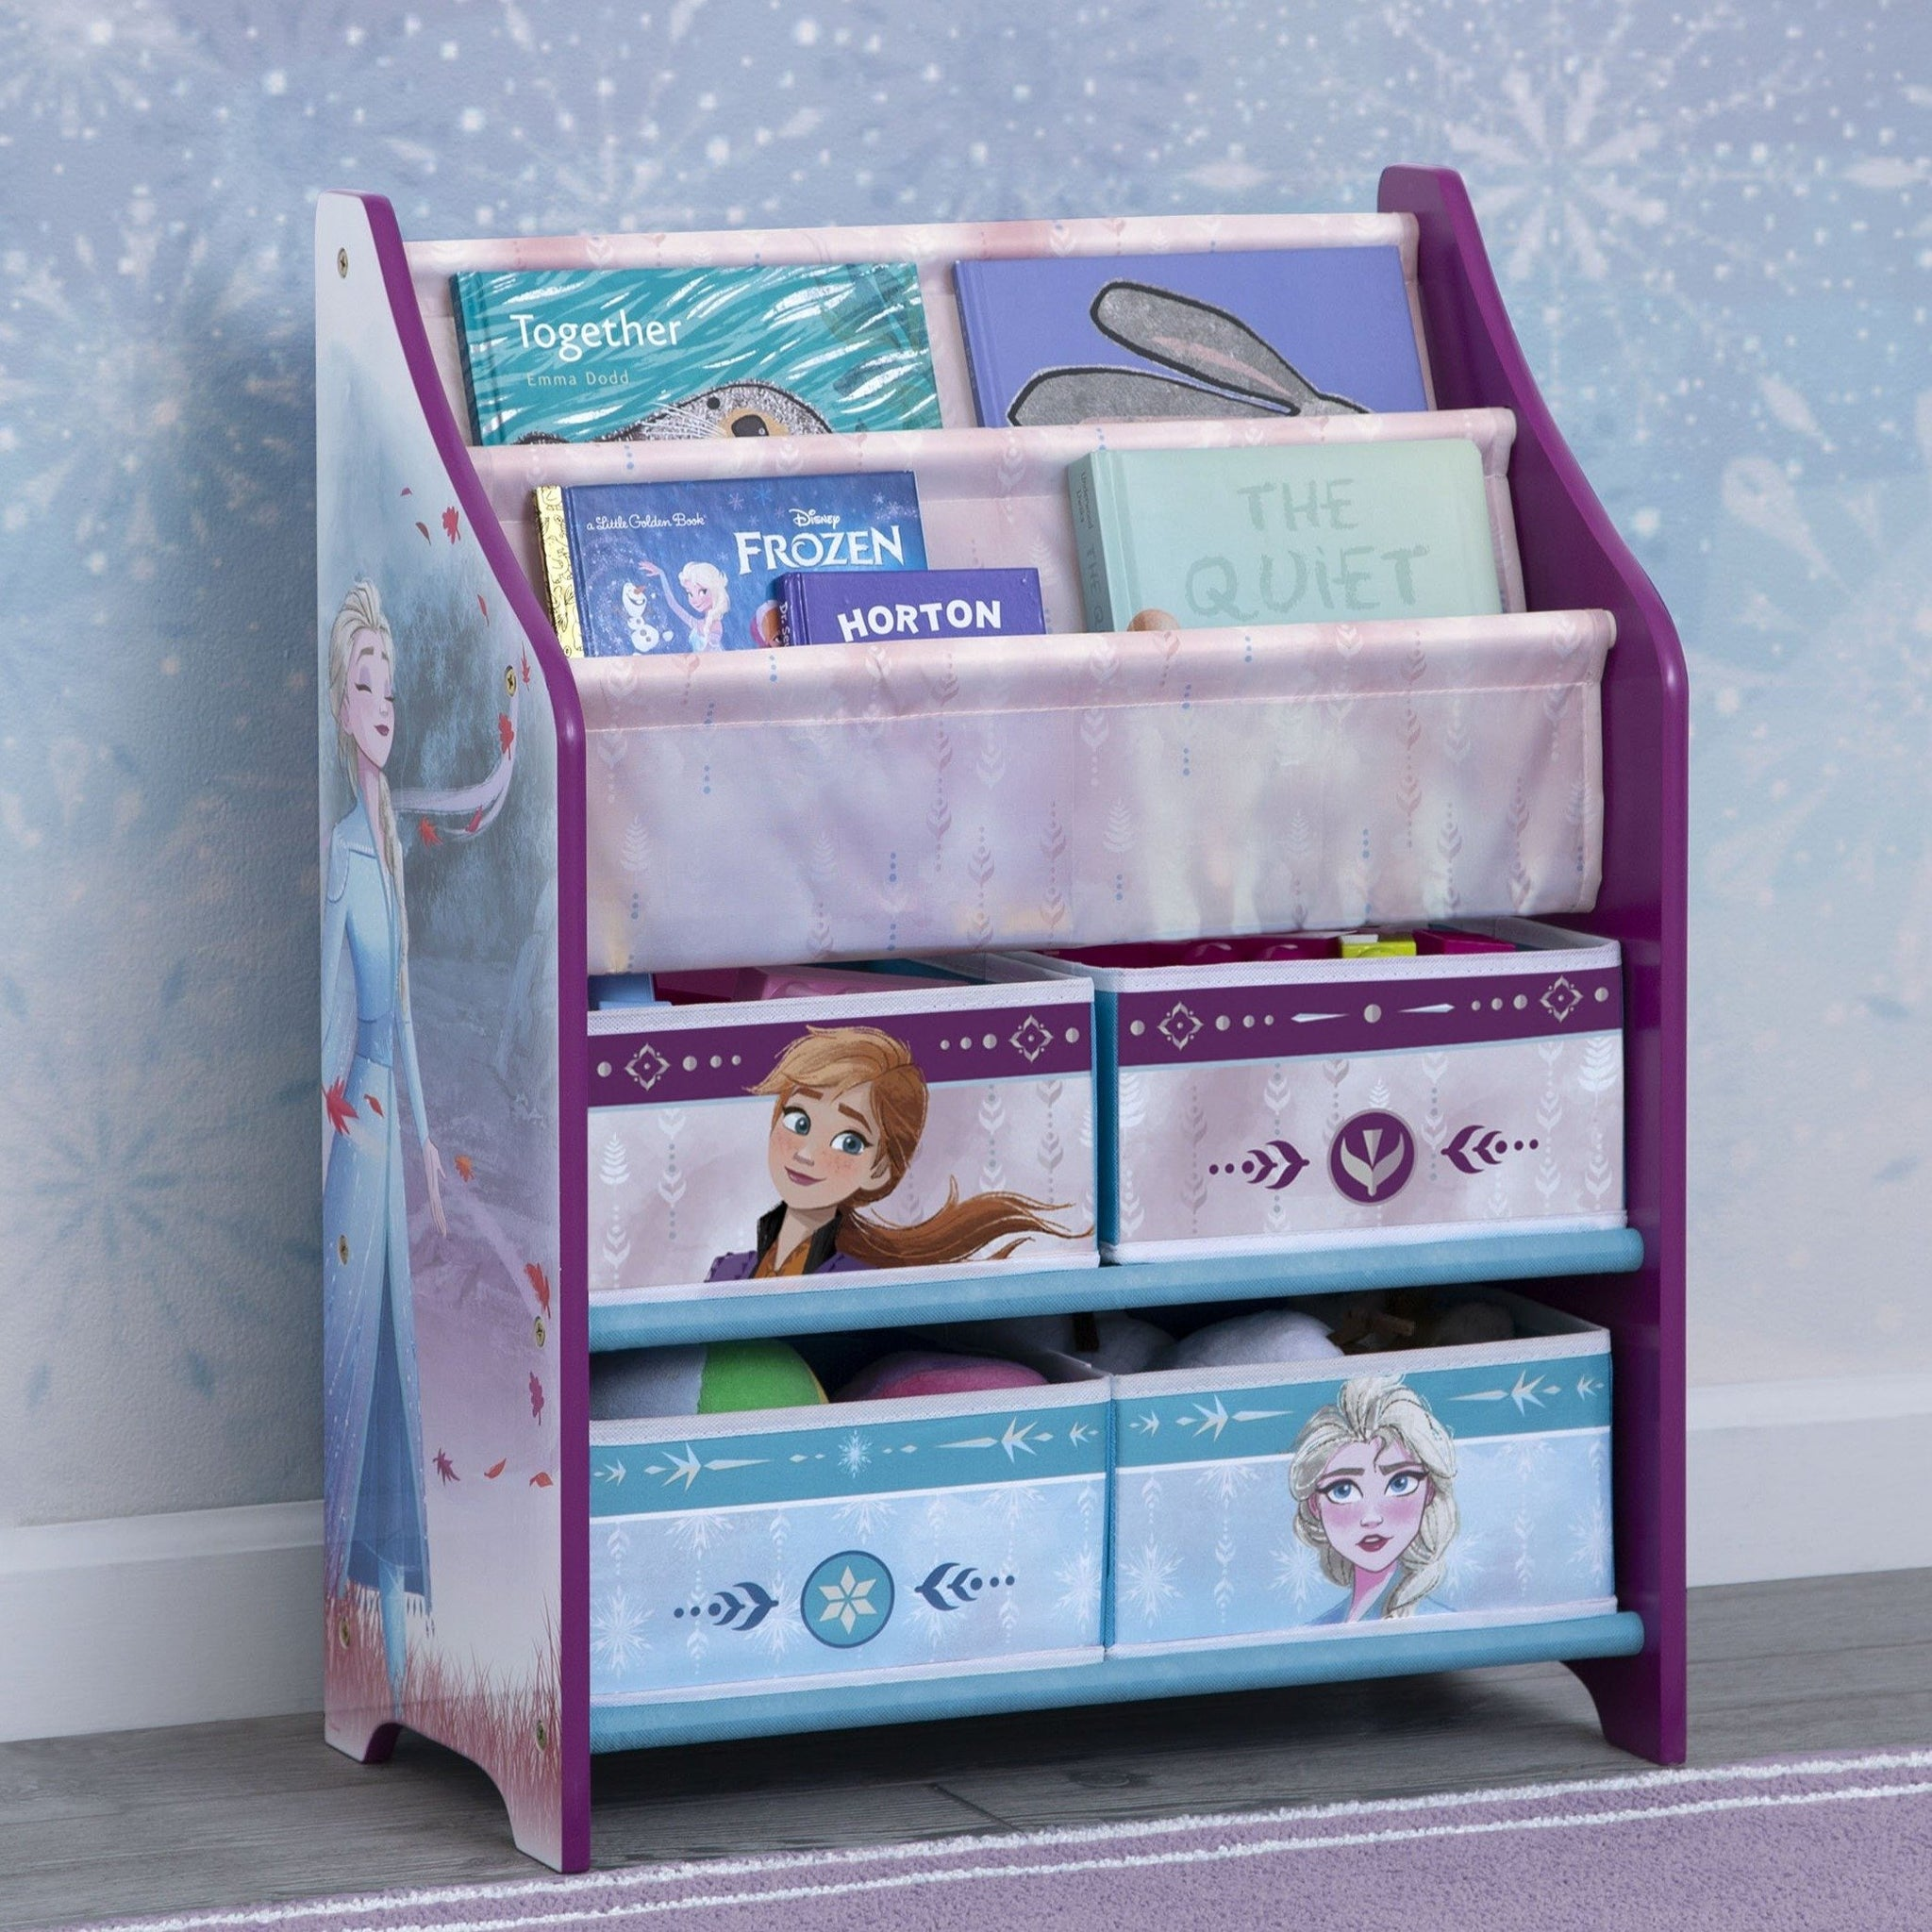 Frozen II Toy and Book Organizer